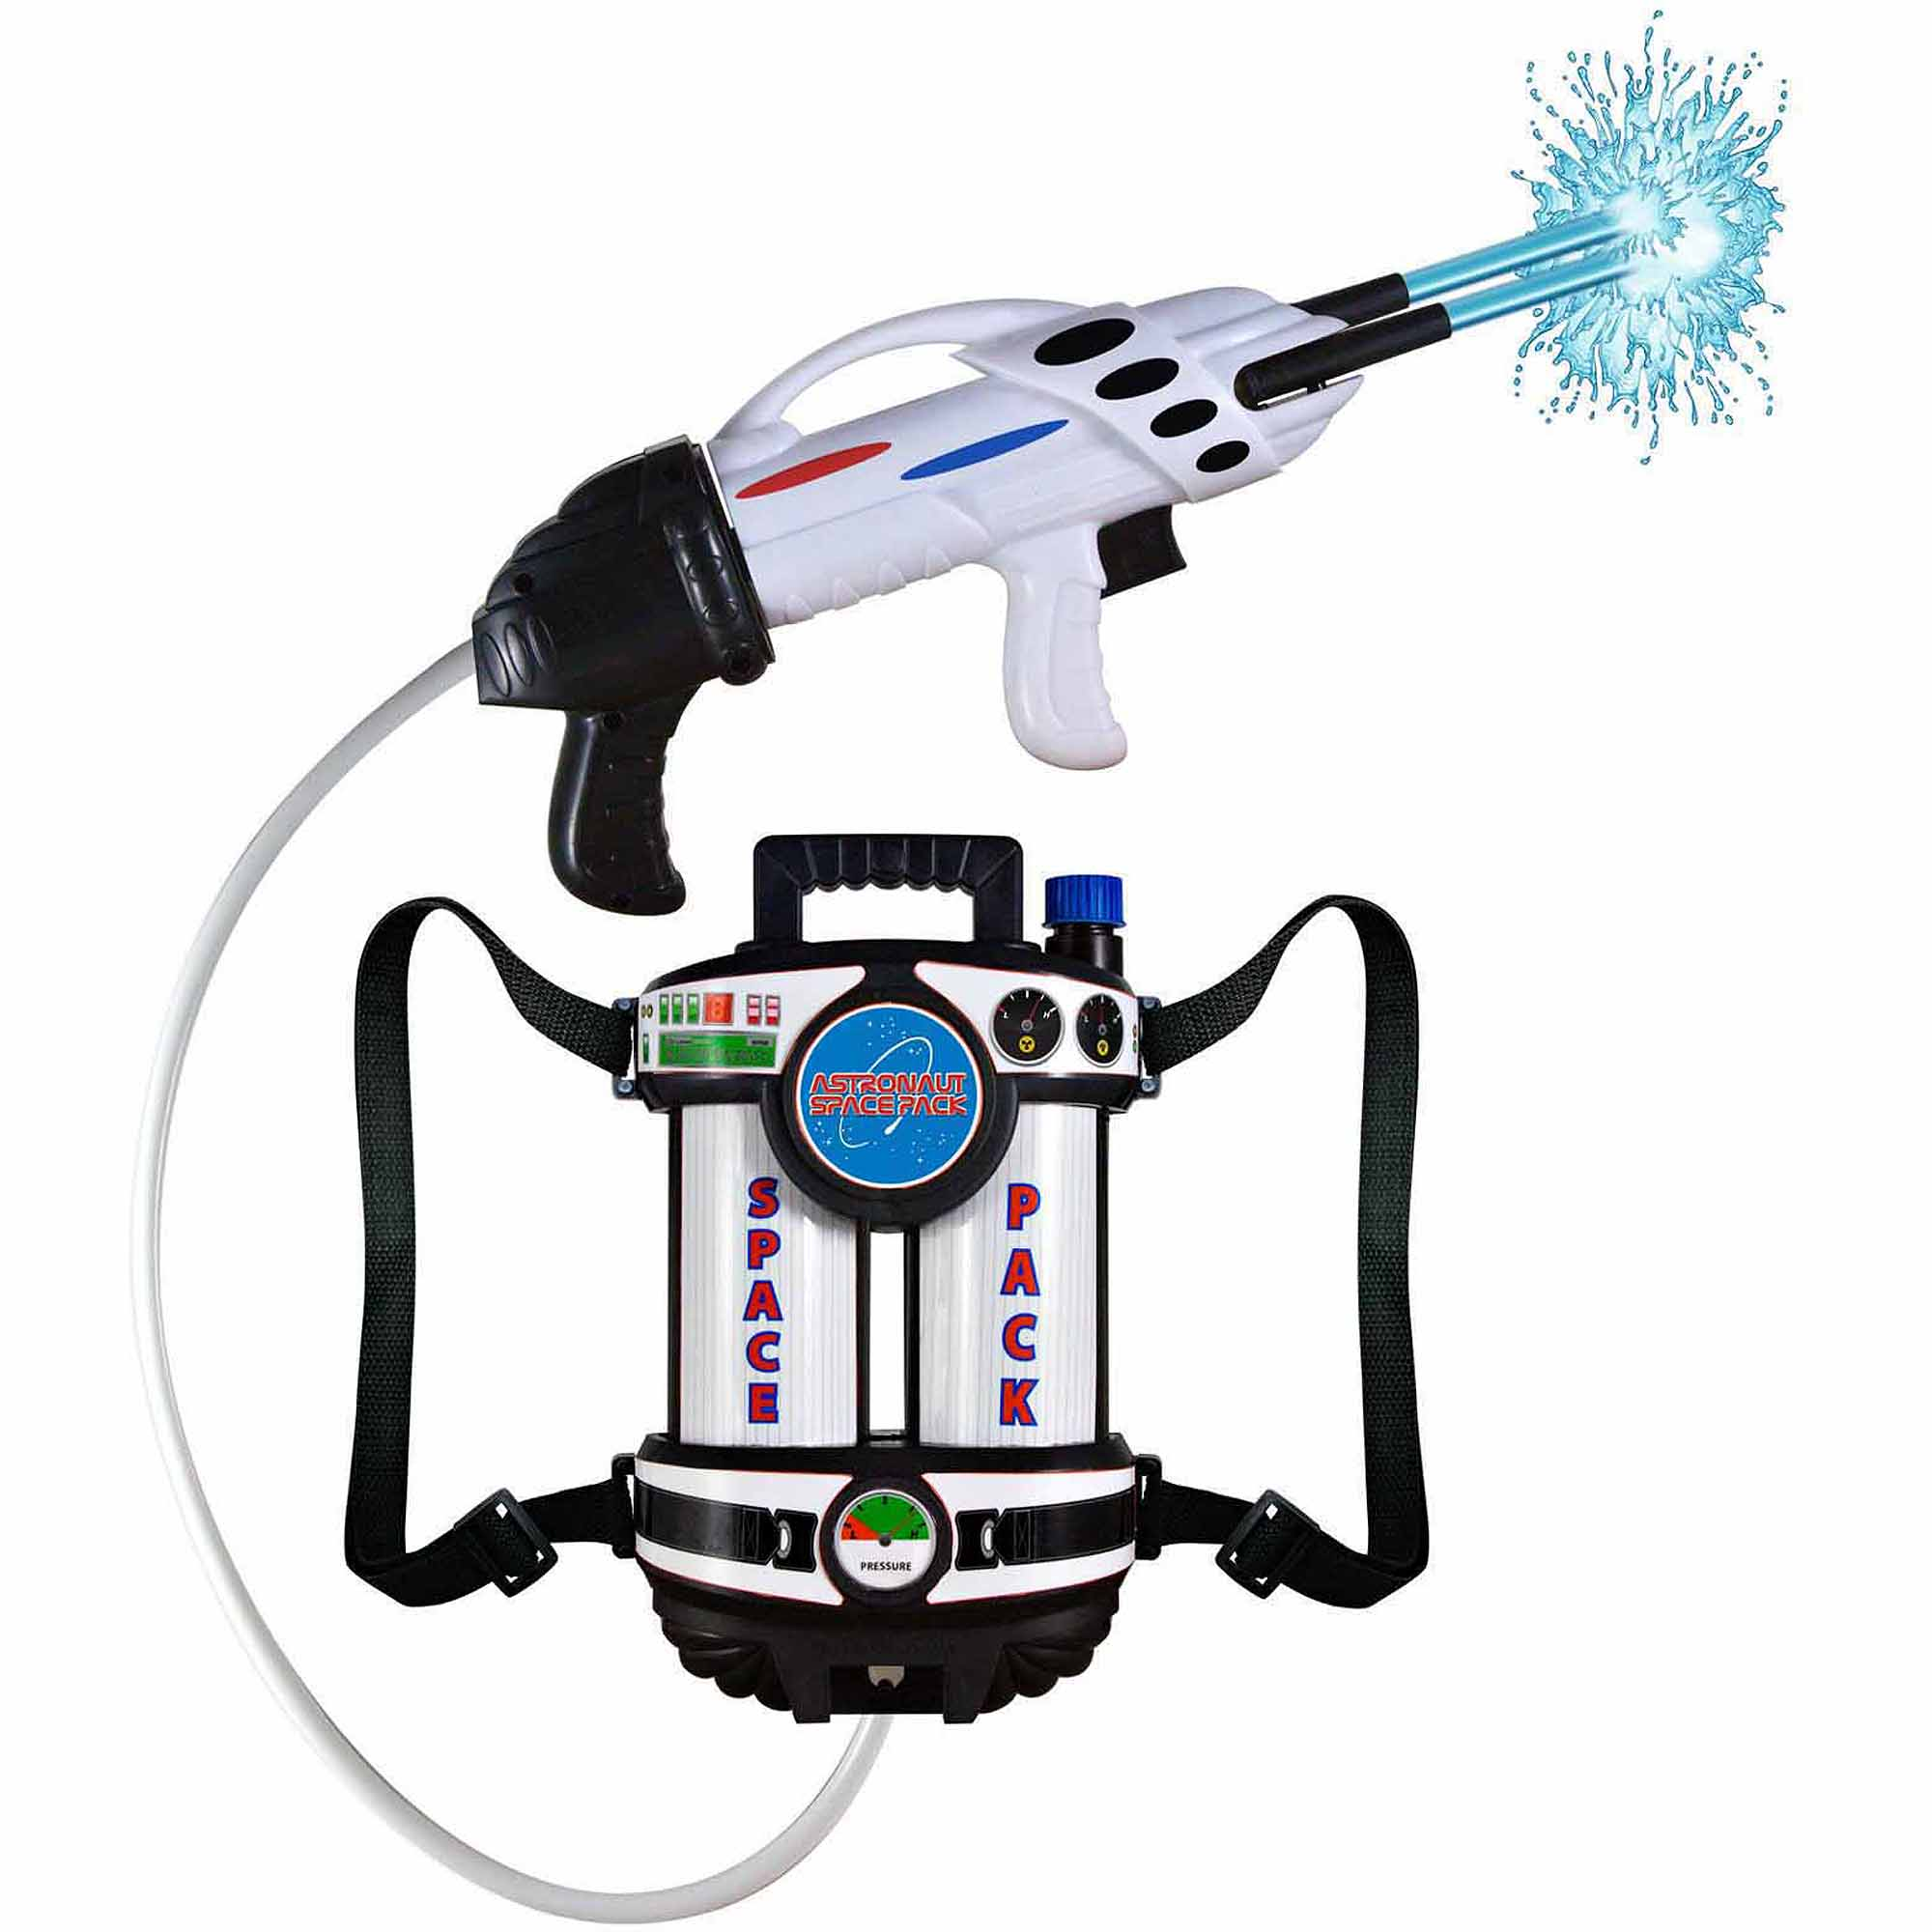 Astronaut Space Pack Super Soaking Water Blaster Halloween Costume Accessory